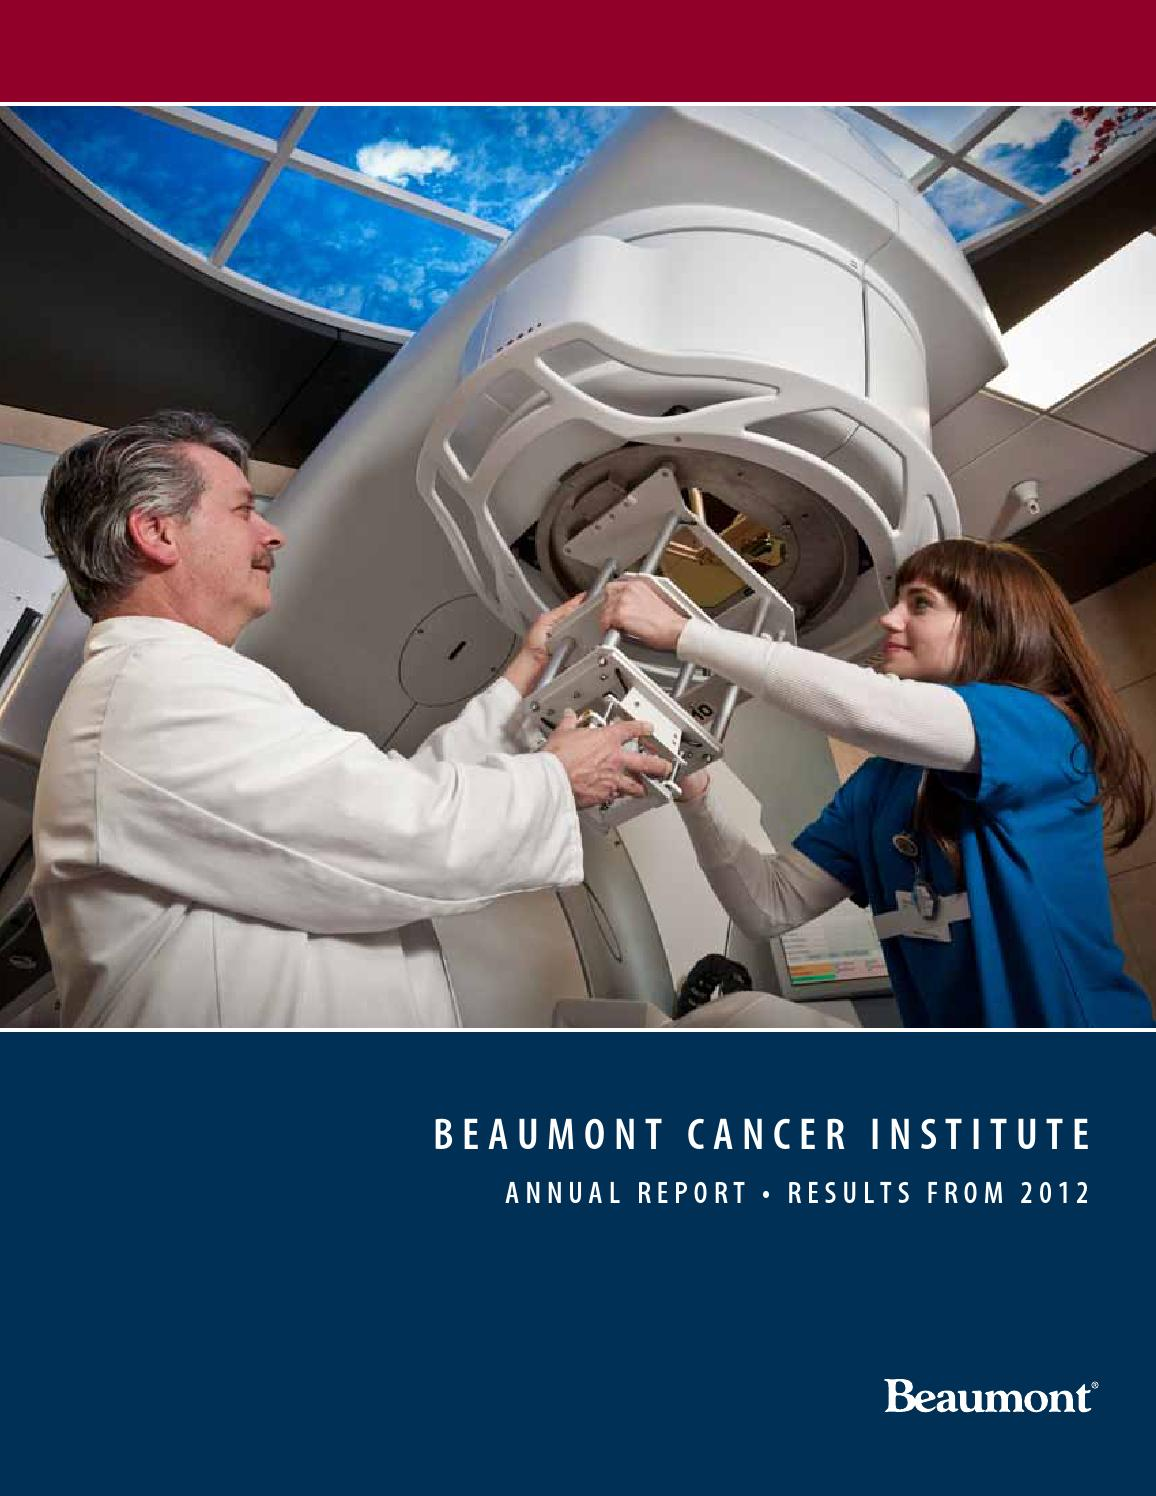 Beaumont Cancer Institute - Annual Report 2012 by Beaumont